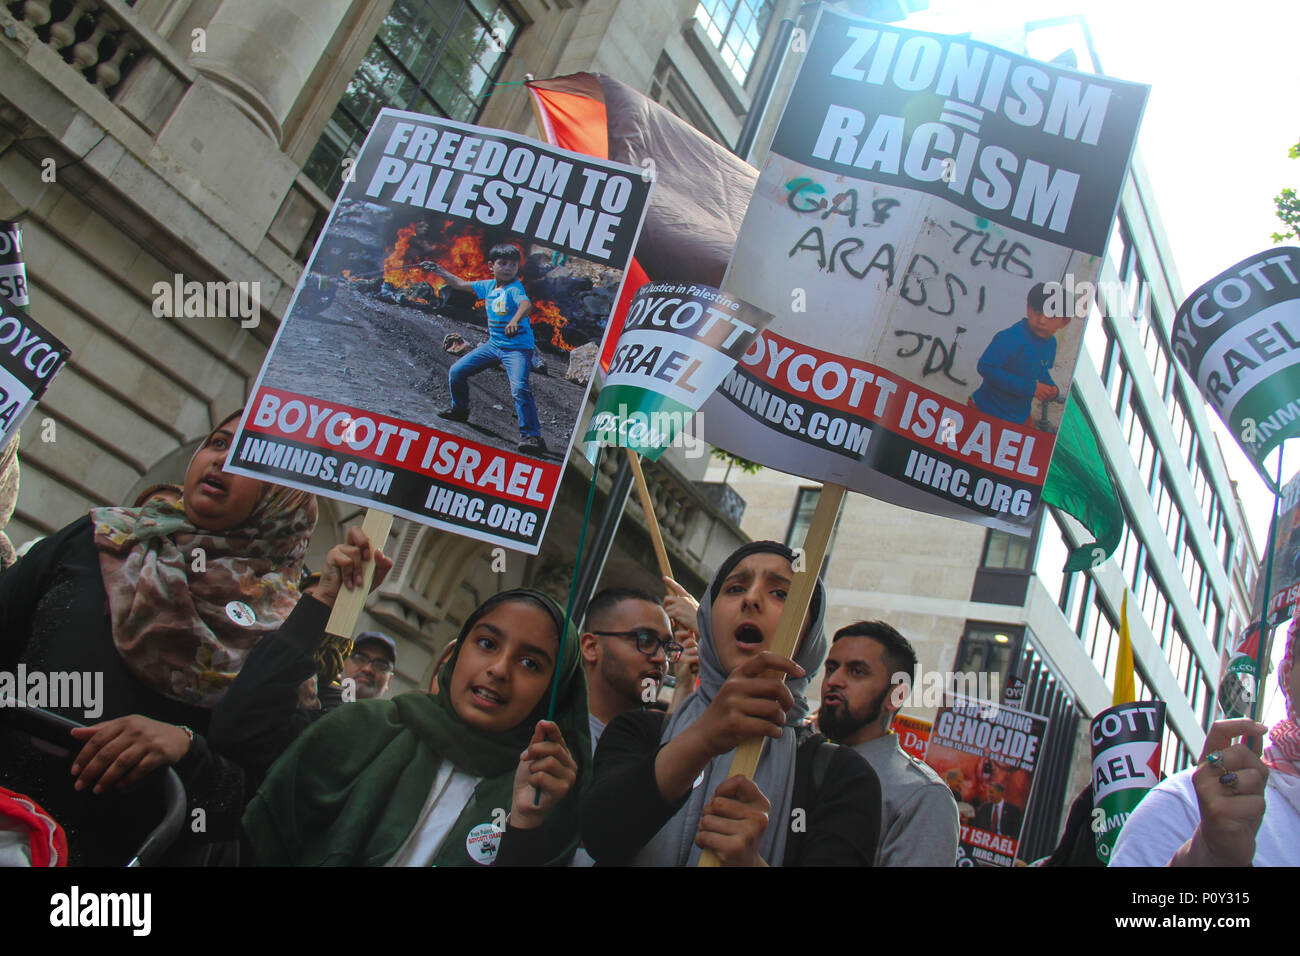 London, UK - 10 June 2018: Young Protestors take part in a demonstration outside the Saudi Arabia Embassy for Al Quds Day on 10 June 2018. The annual event held on the last Friday of Ramadan that was initiated in 1979 to express support for the Palestinians and oppose Zionism and Israel. Credit: David Mbiyu / Alamy Live News - Stock Image